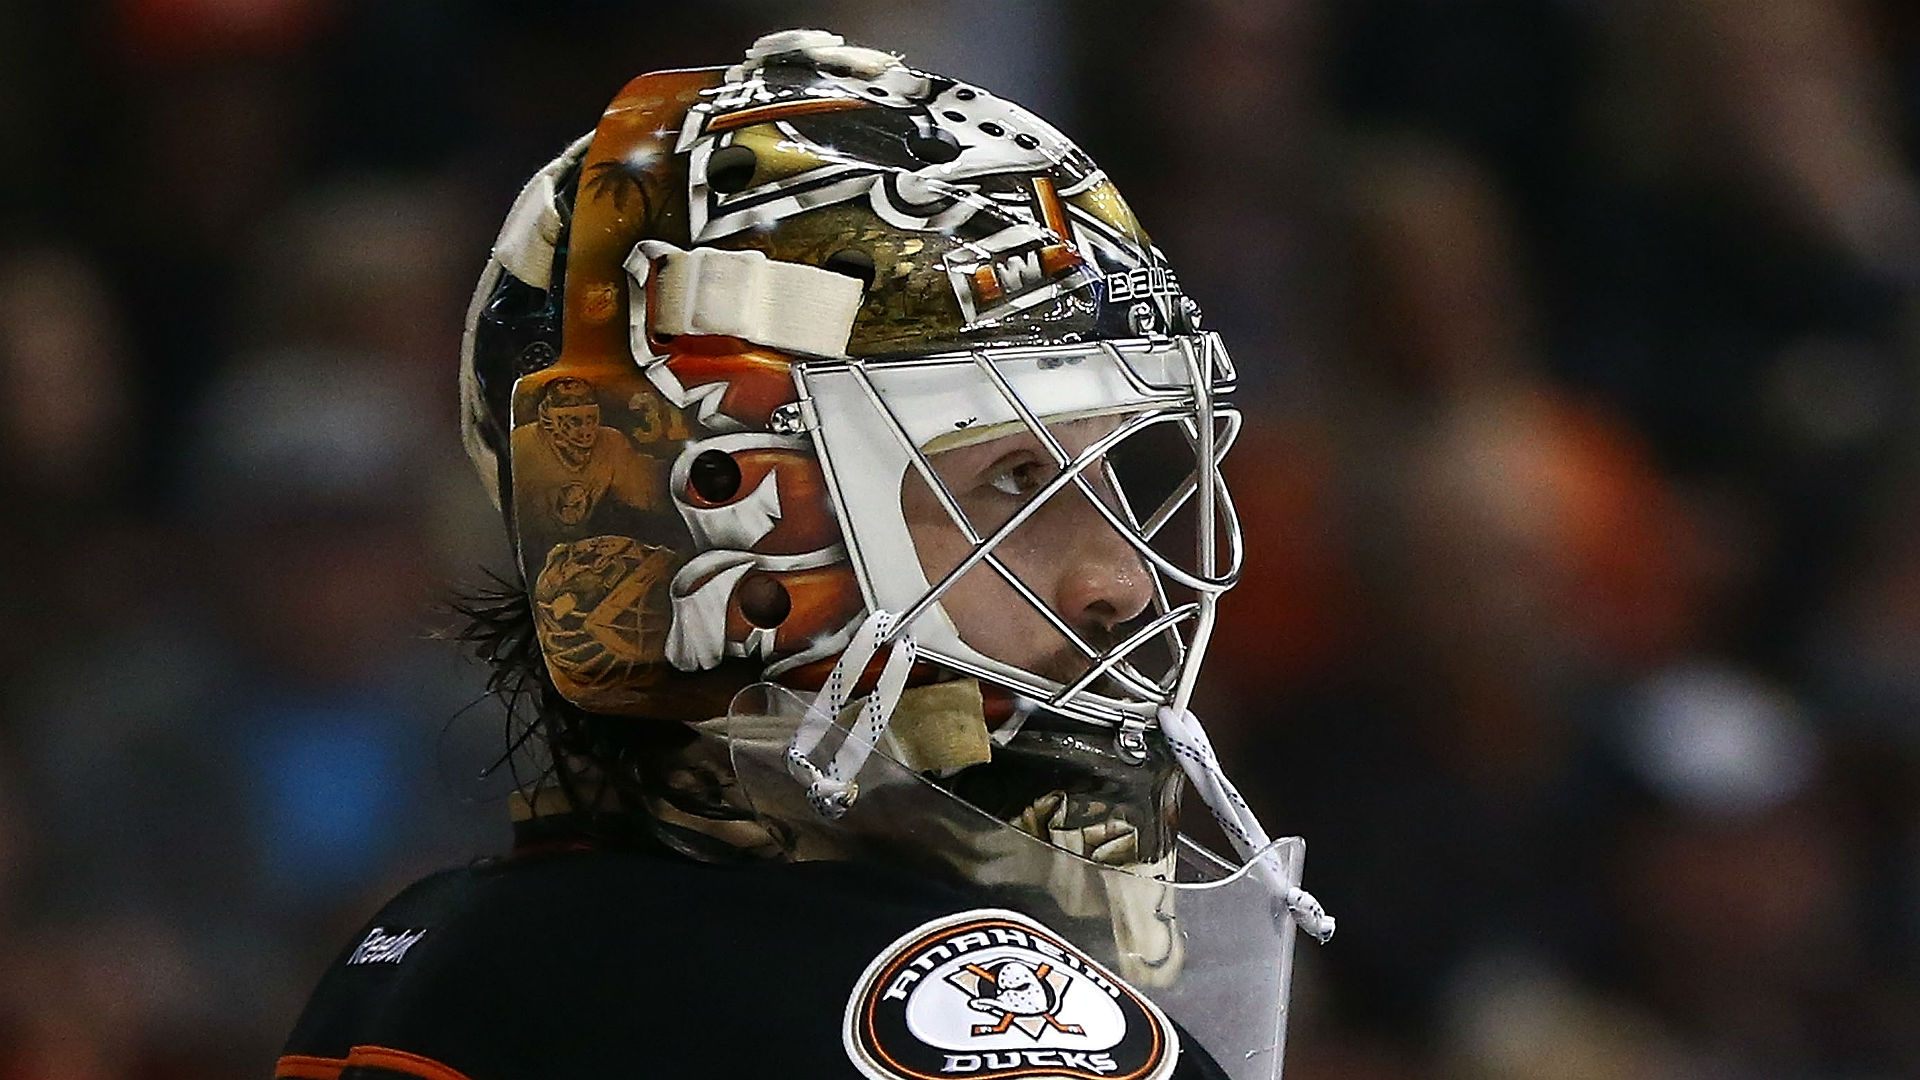 John Gibson dives to make miraculous save against Crosby, Penguins